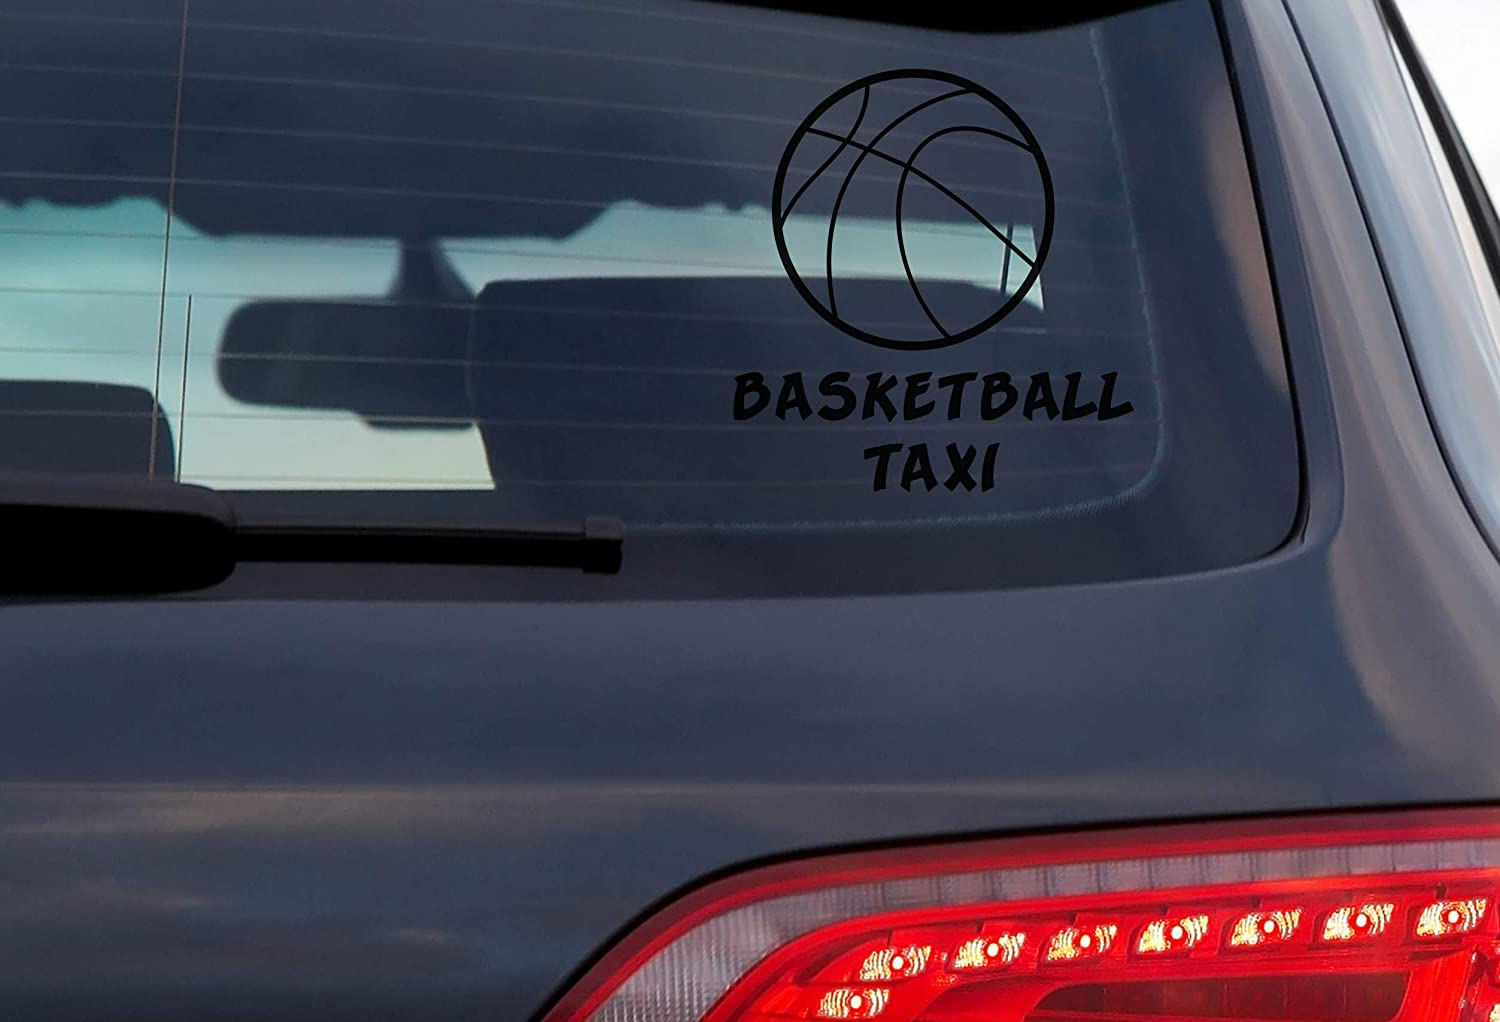 4 Inch White Vinyl Decal for Car Window Exterior DOOMSDAYDECALS Basketball Taxi